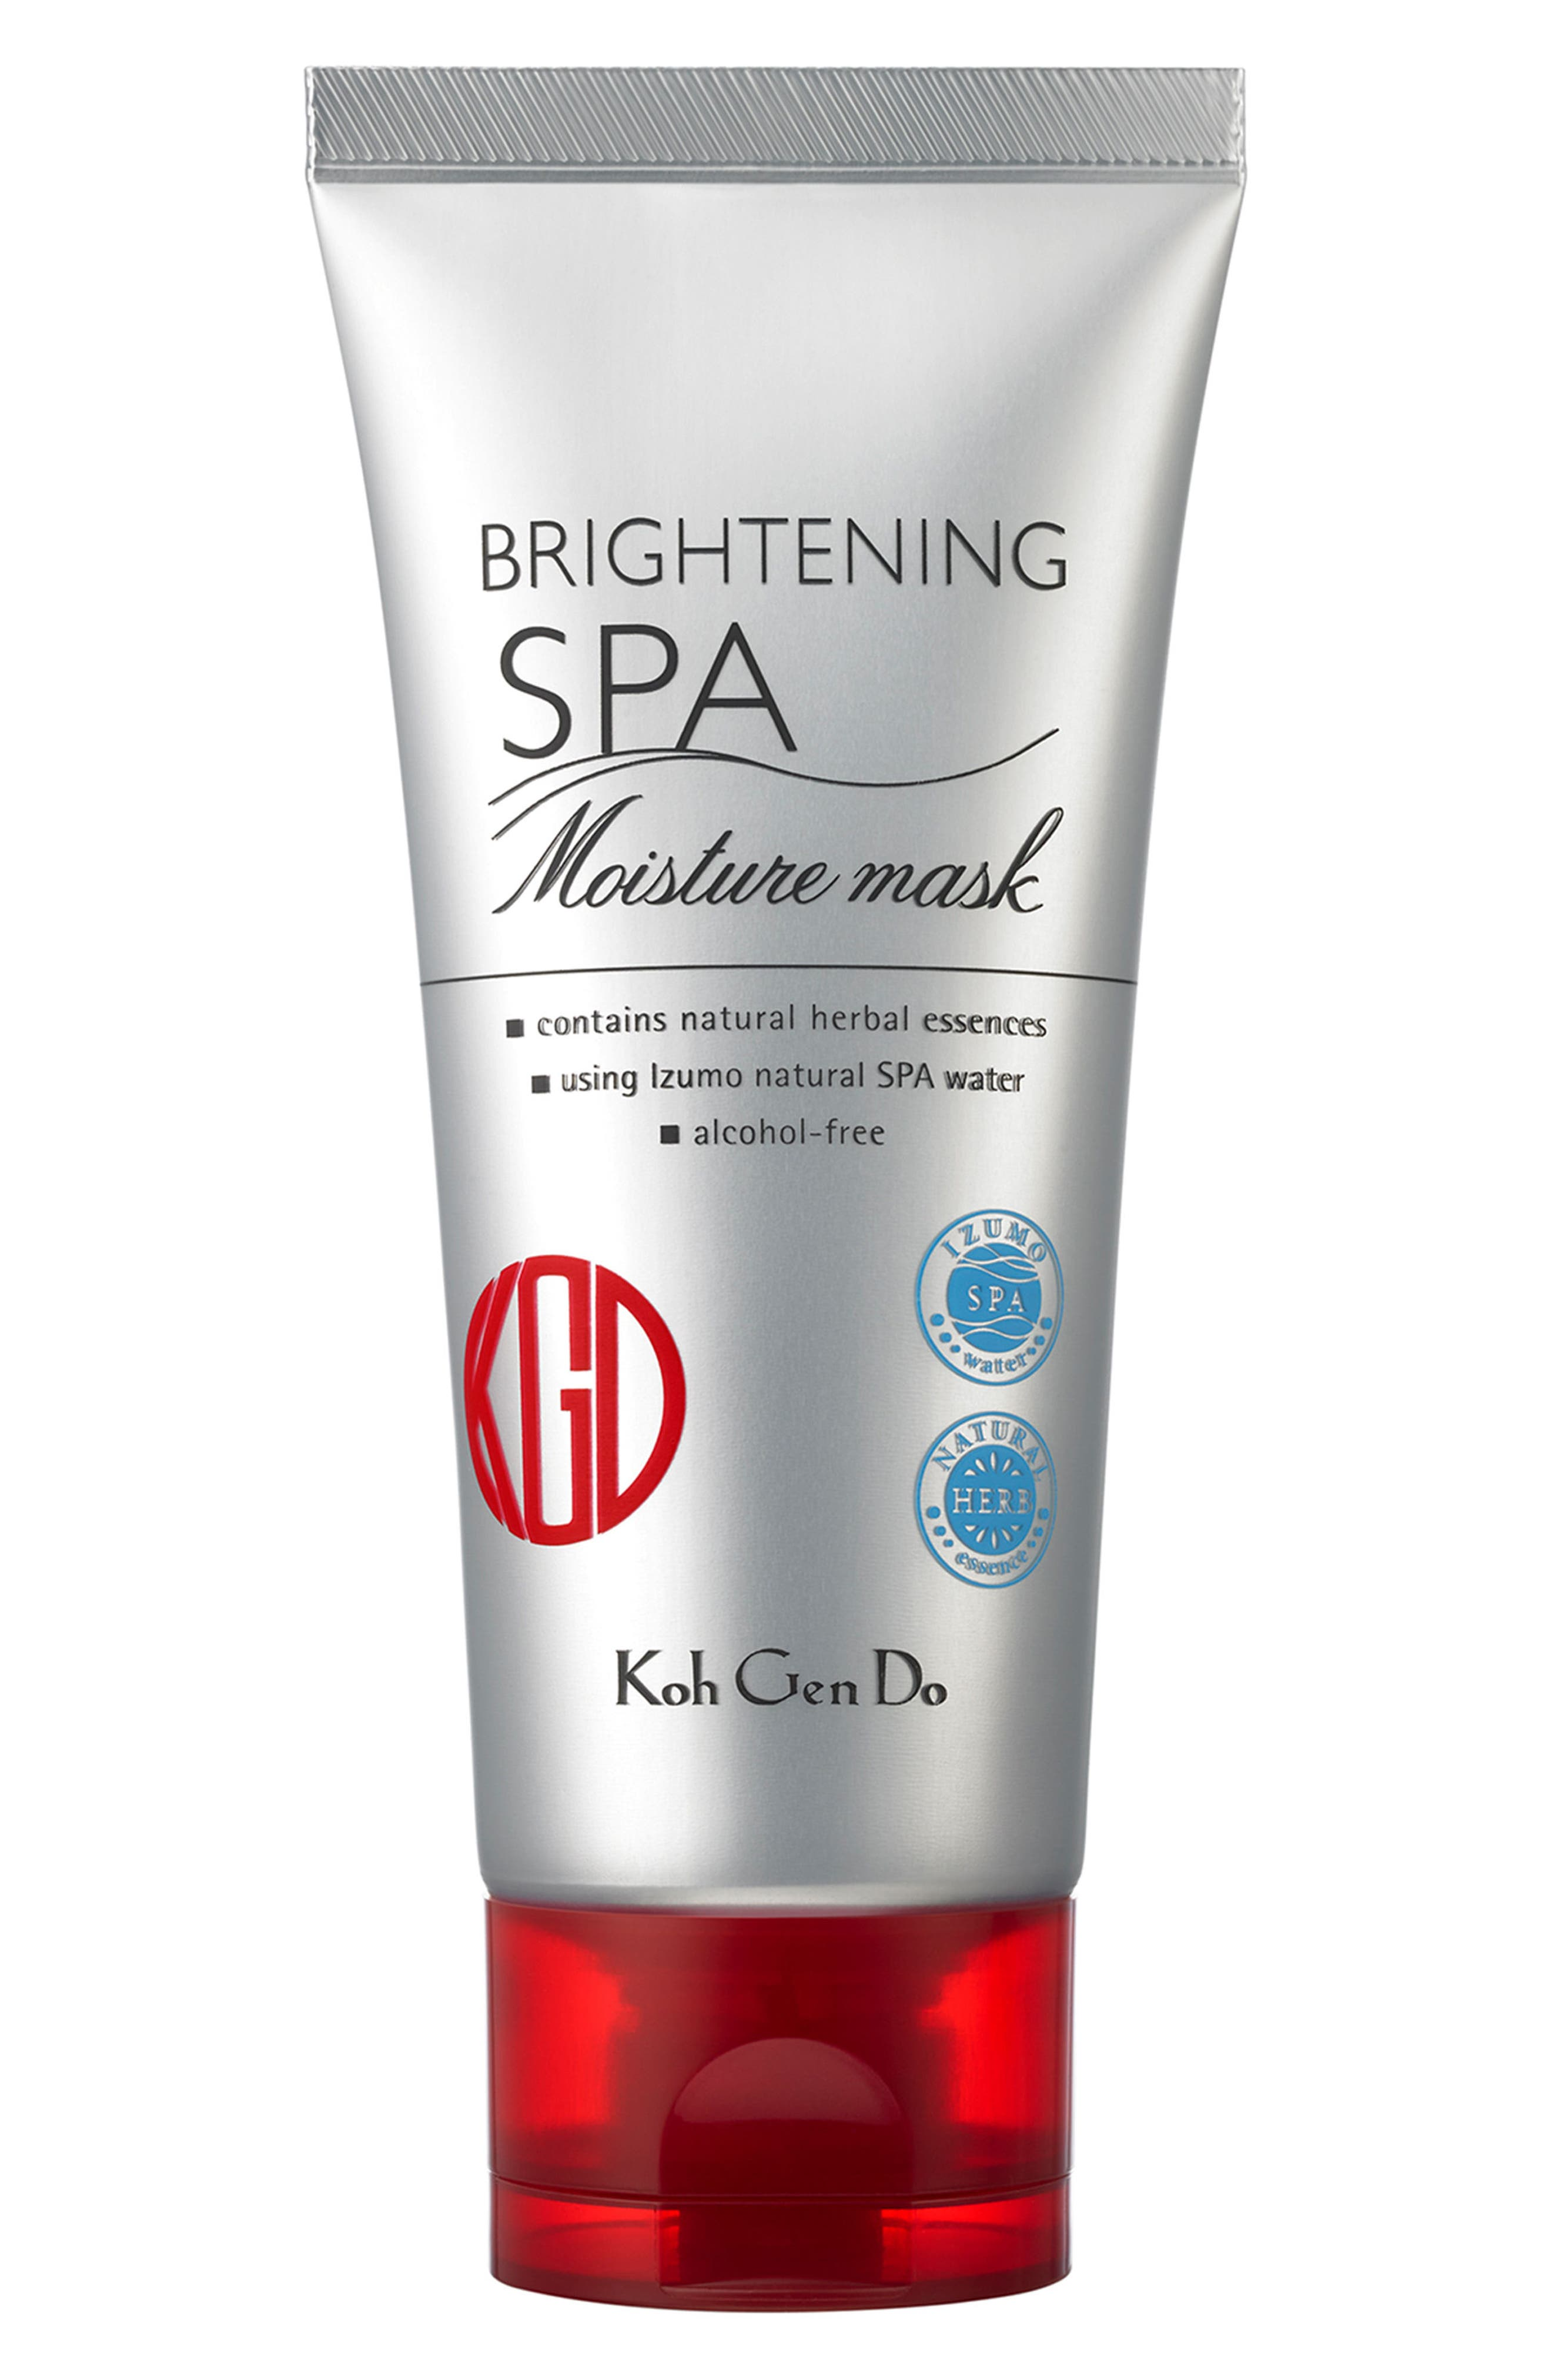 Koh Gen Do Brightening Moisture Mask